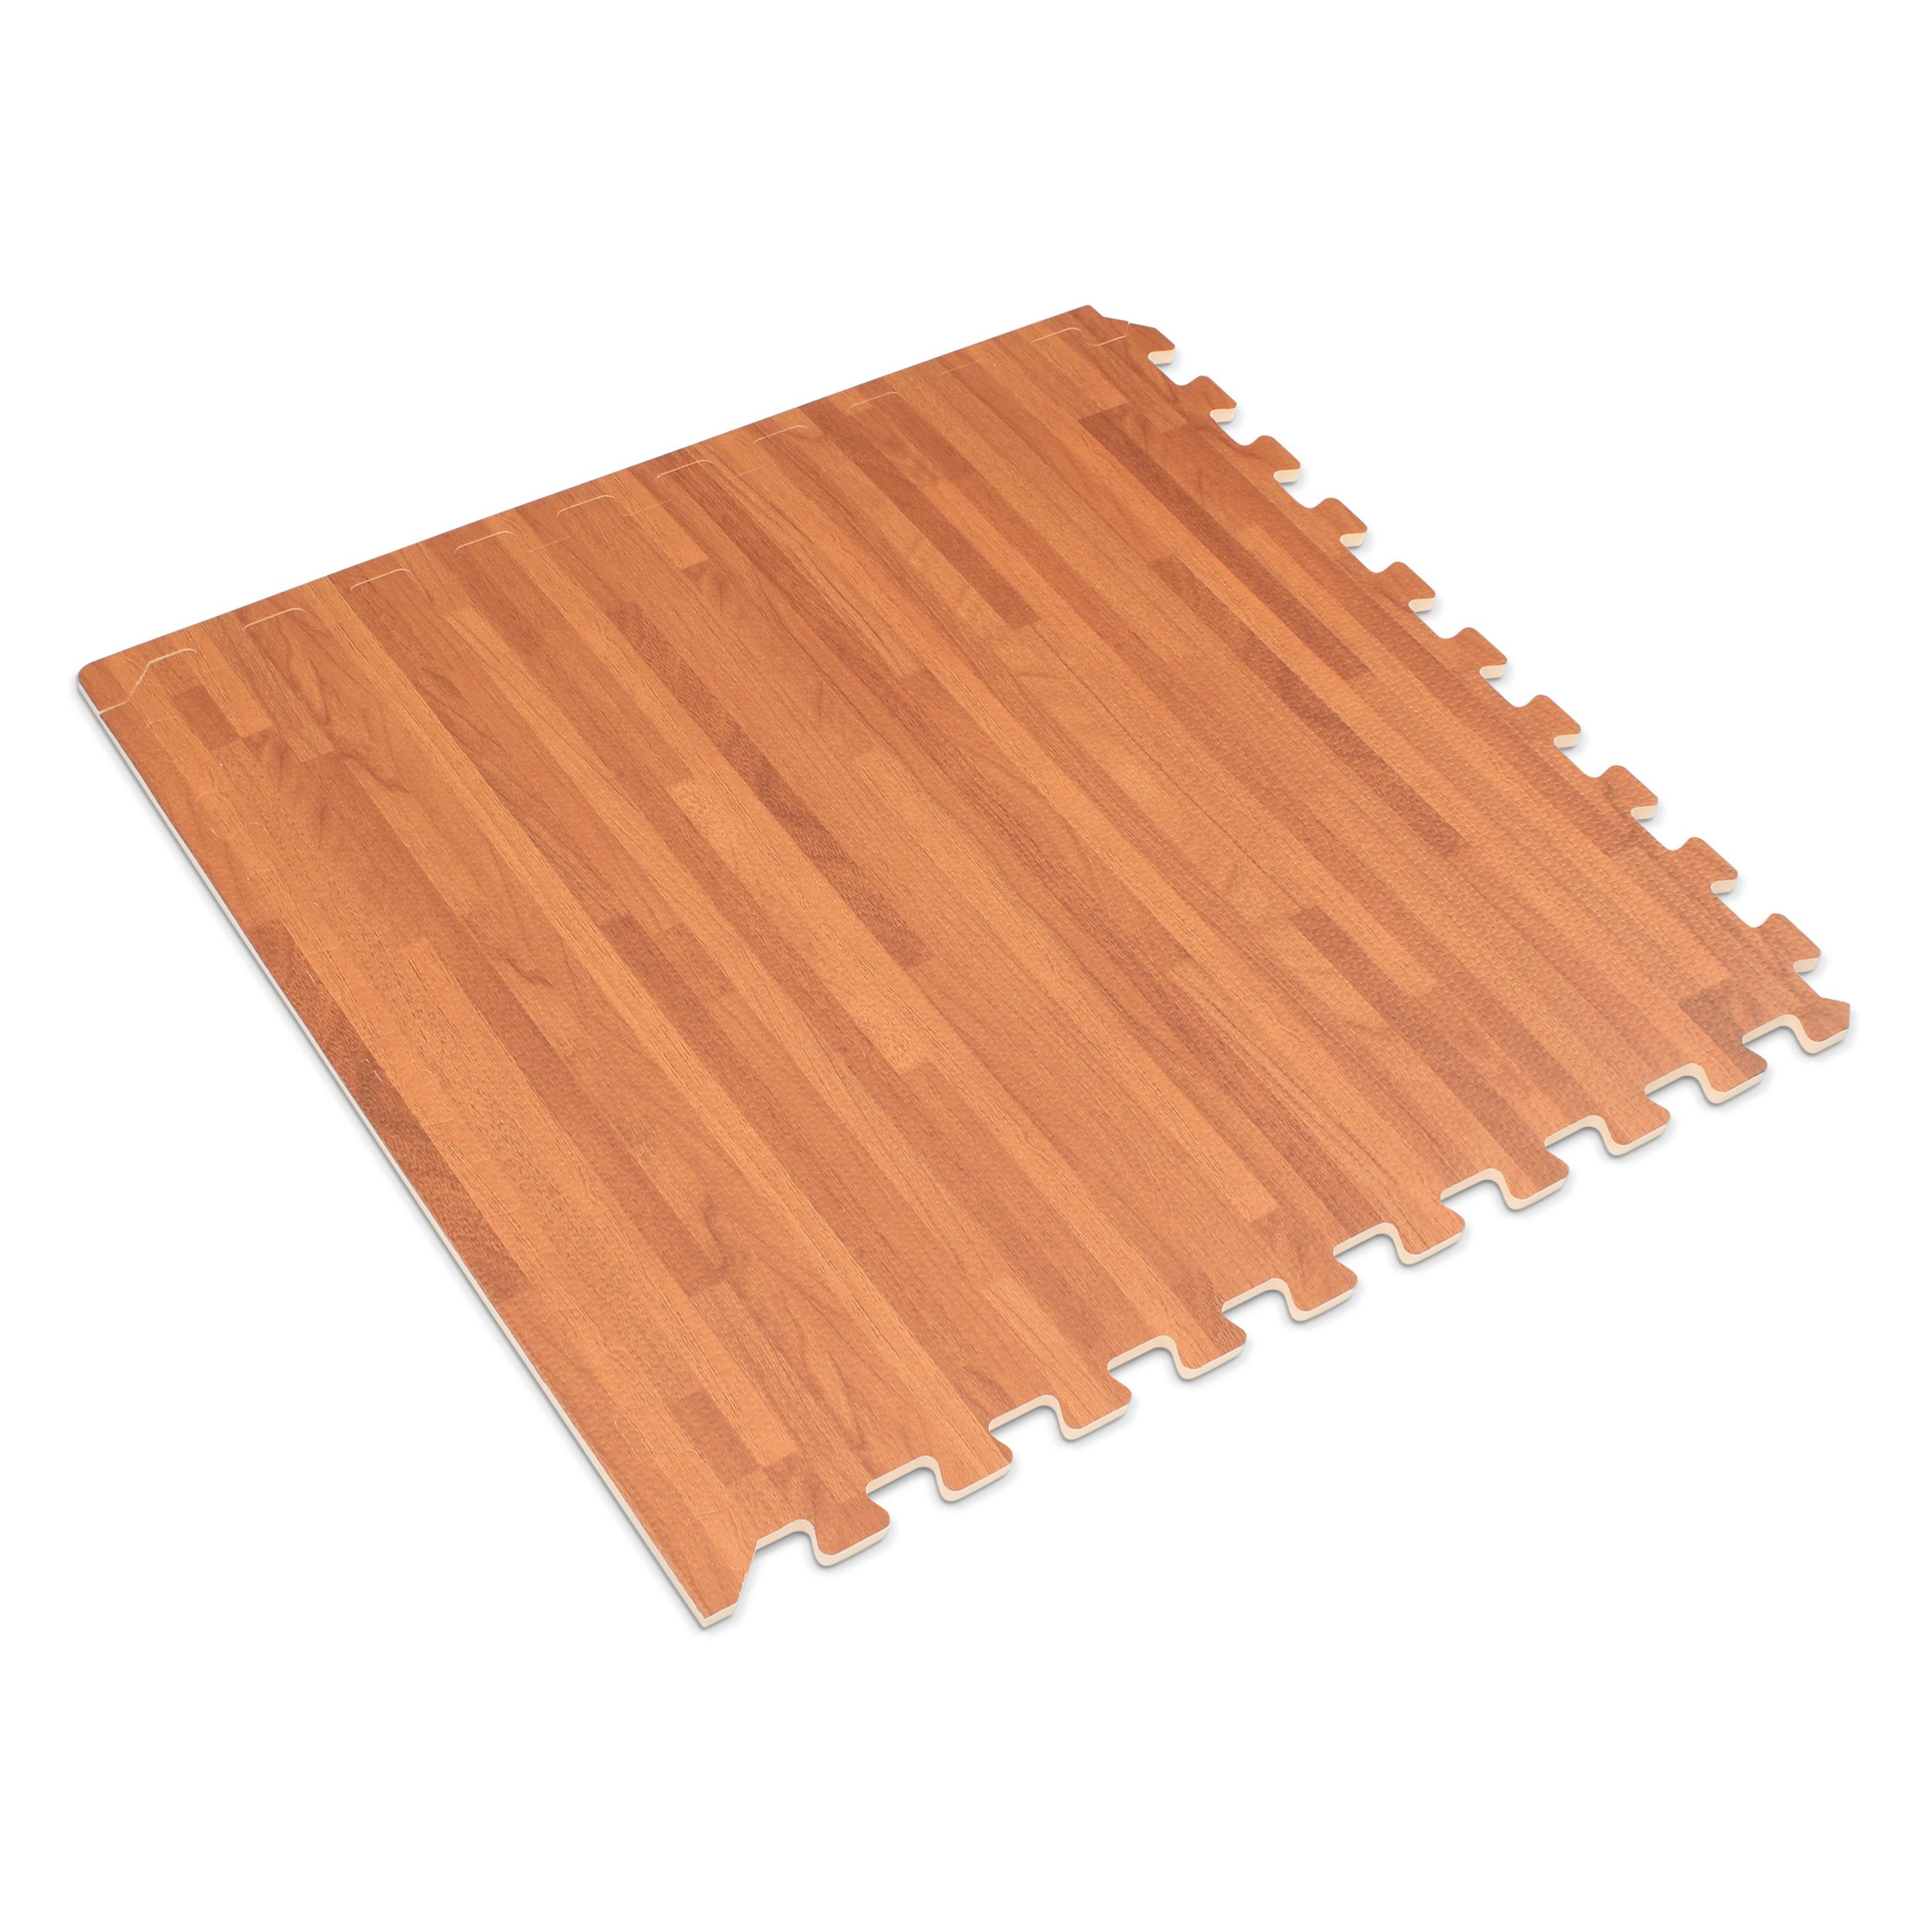 Forest Floor 3/8'' Thick Printed Wood Grain Interlocking Foam Floor Mats, 16 Sq Ft (4 Tiles), Mahogany by Forest Floor (Image #2)